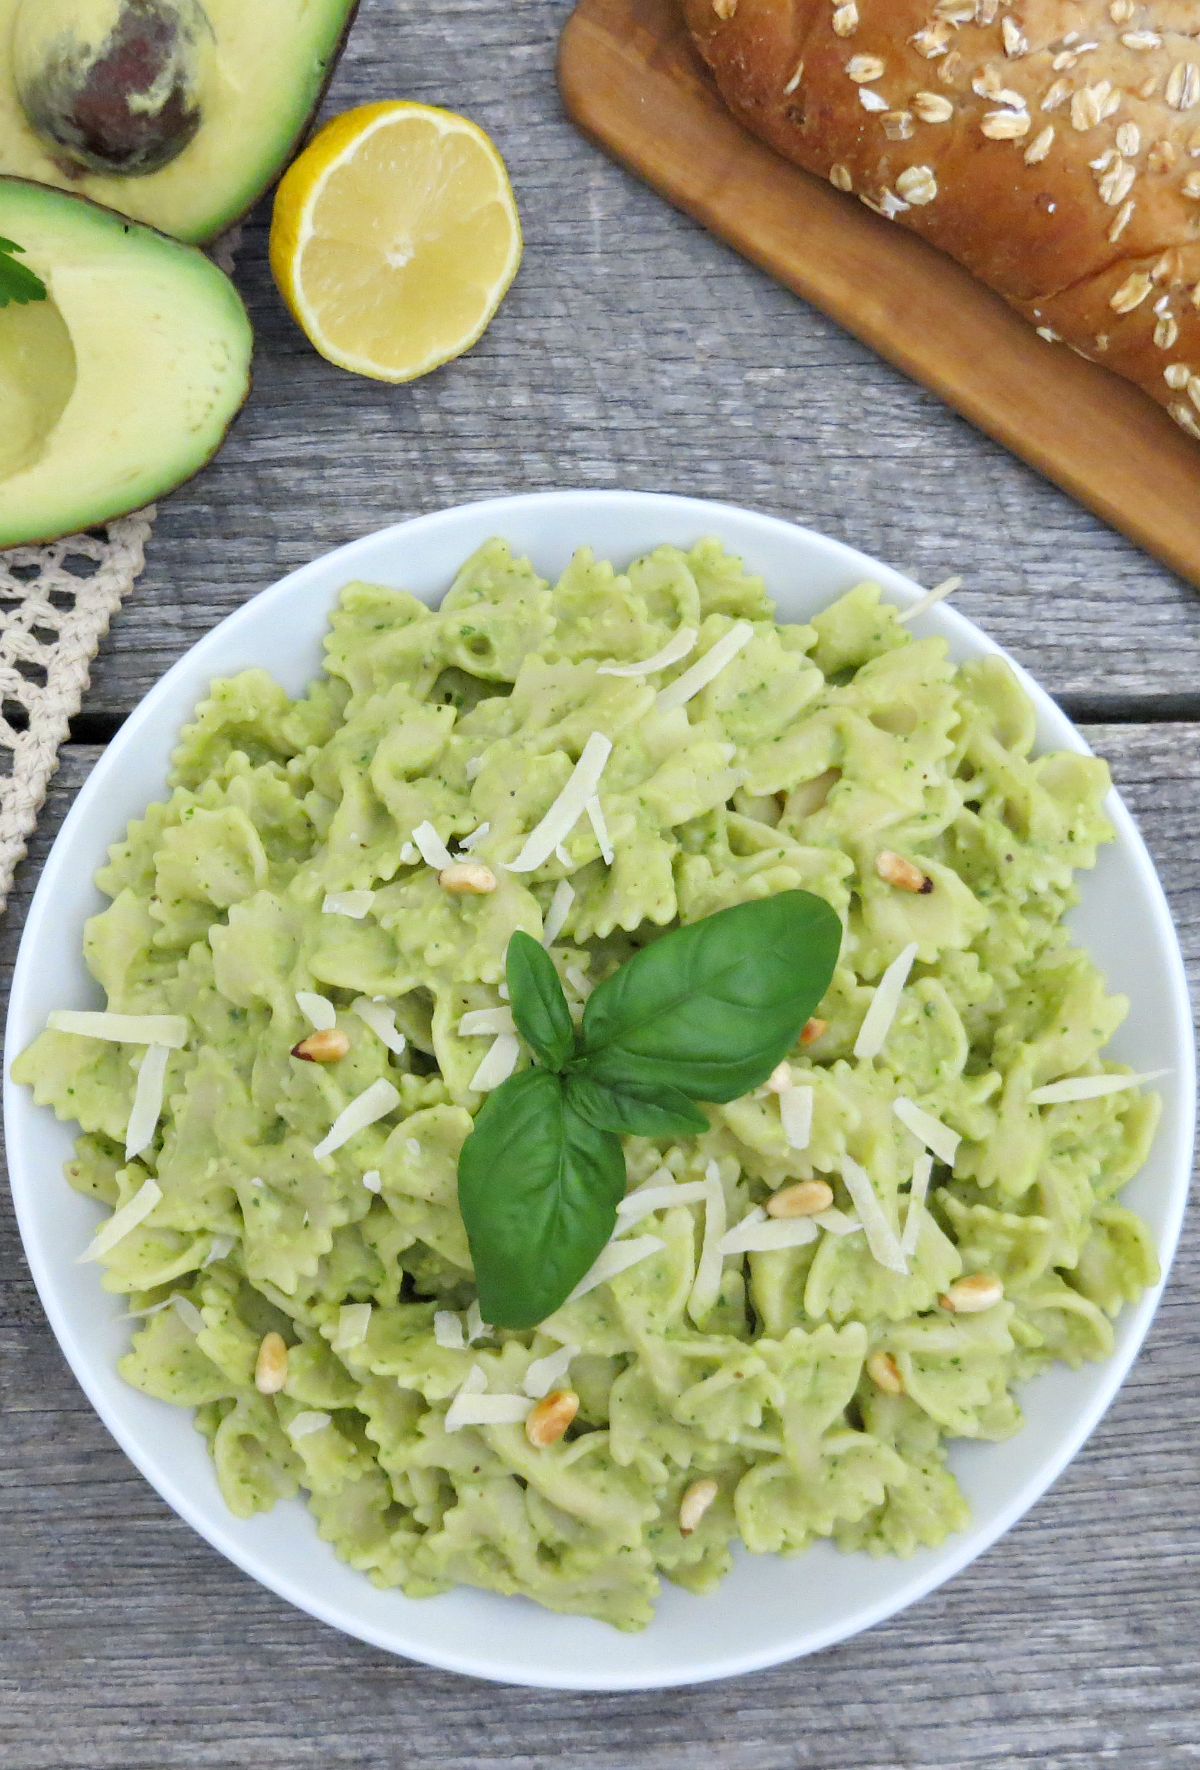 ... avocado sauce cream y avocado pasta zucchini pasta with avocado cream